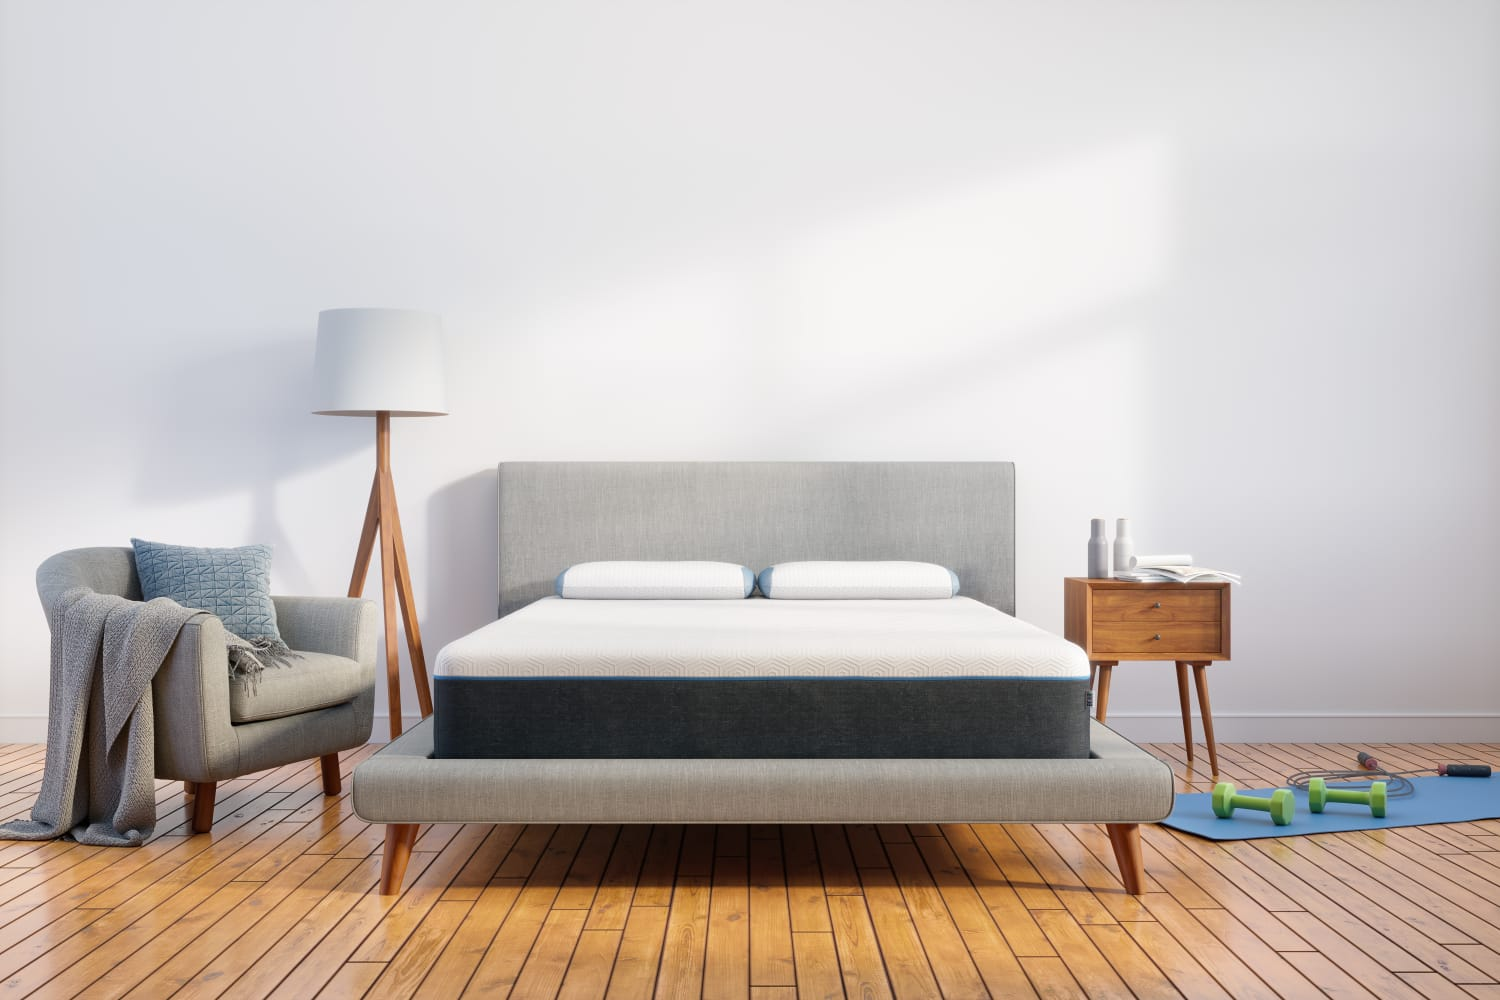 You Probably Haven't Heard of this Mattress Brand Yet, But It Gave Me the Best Sleep of My Life